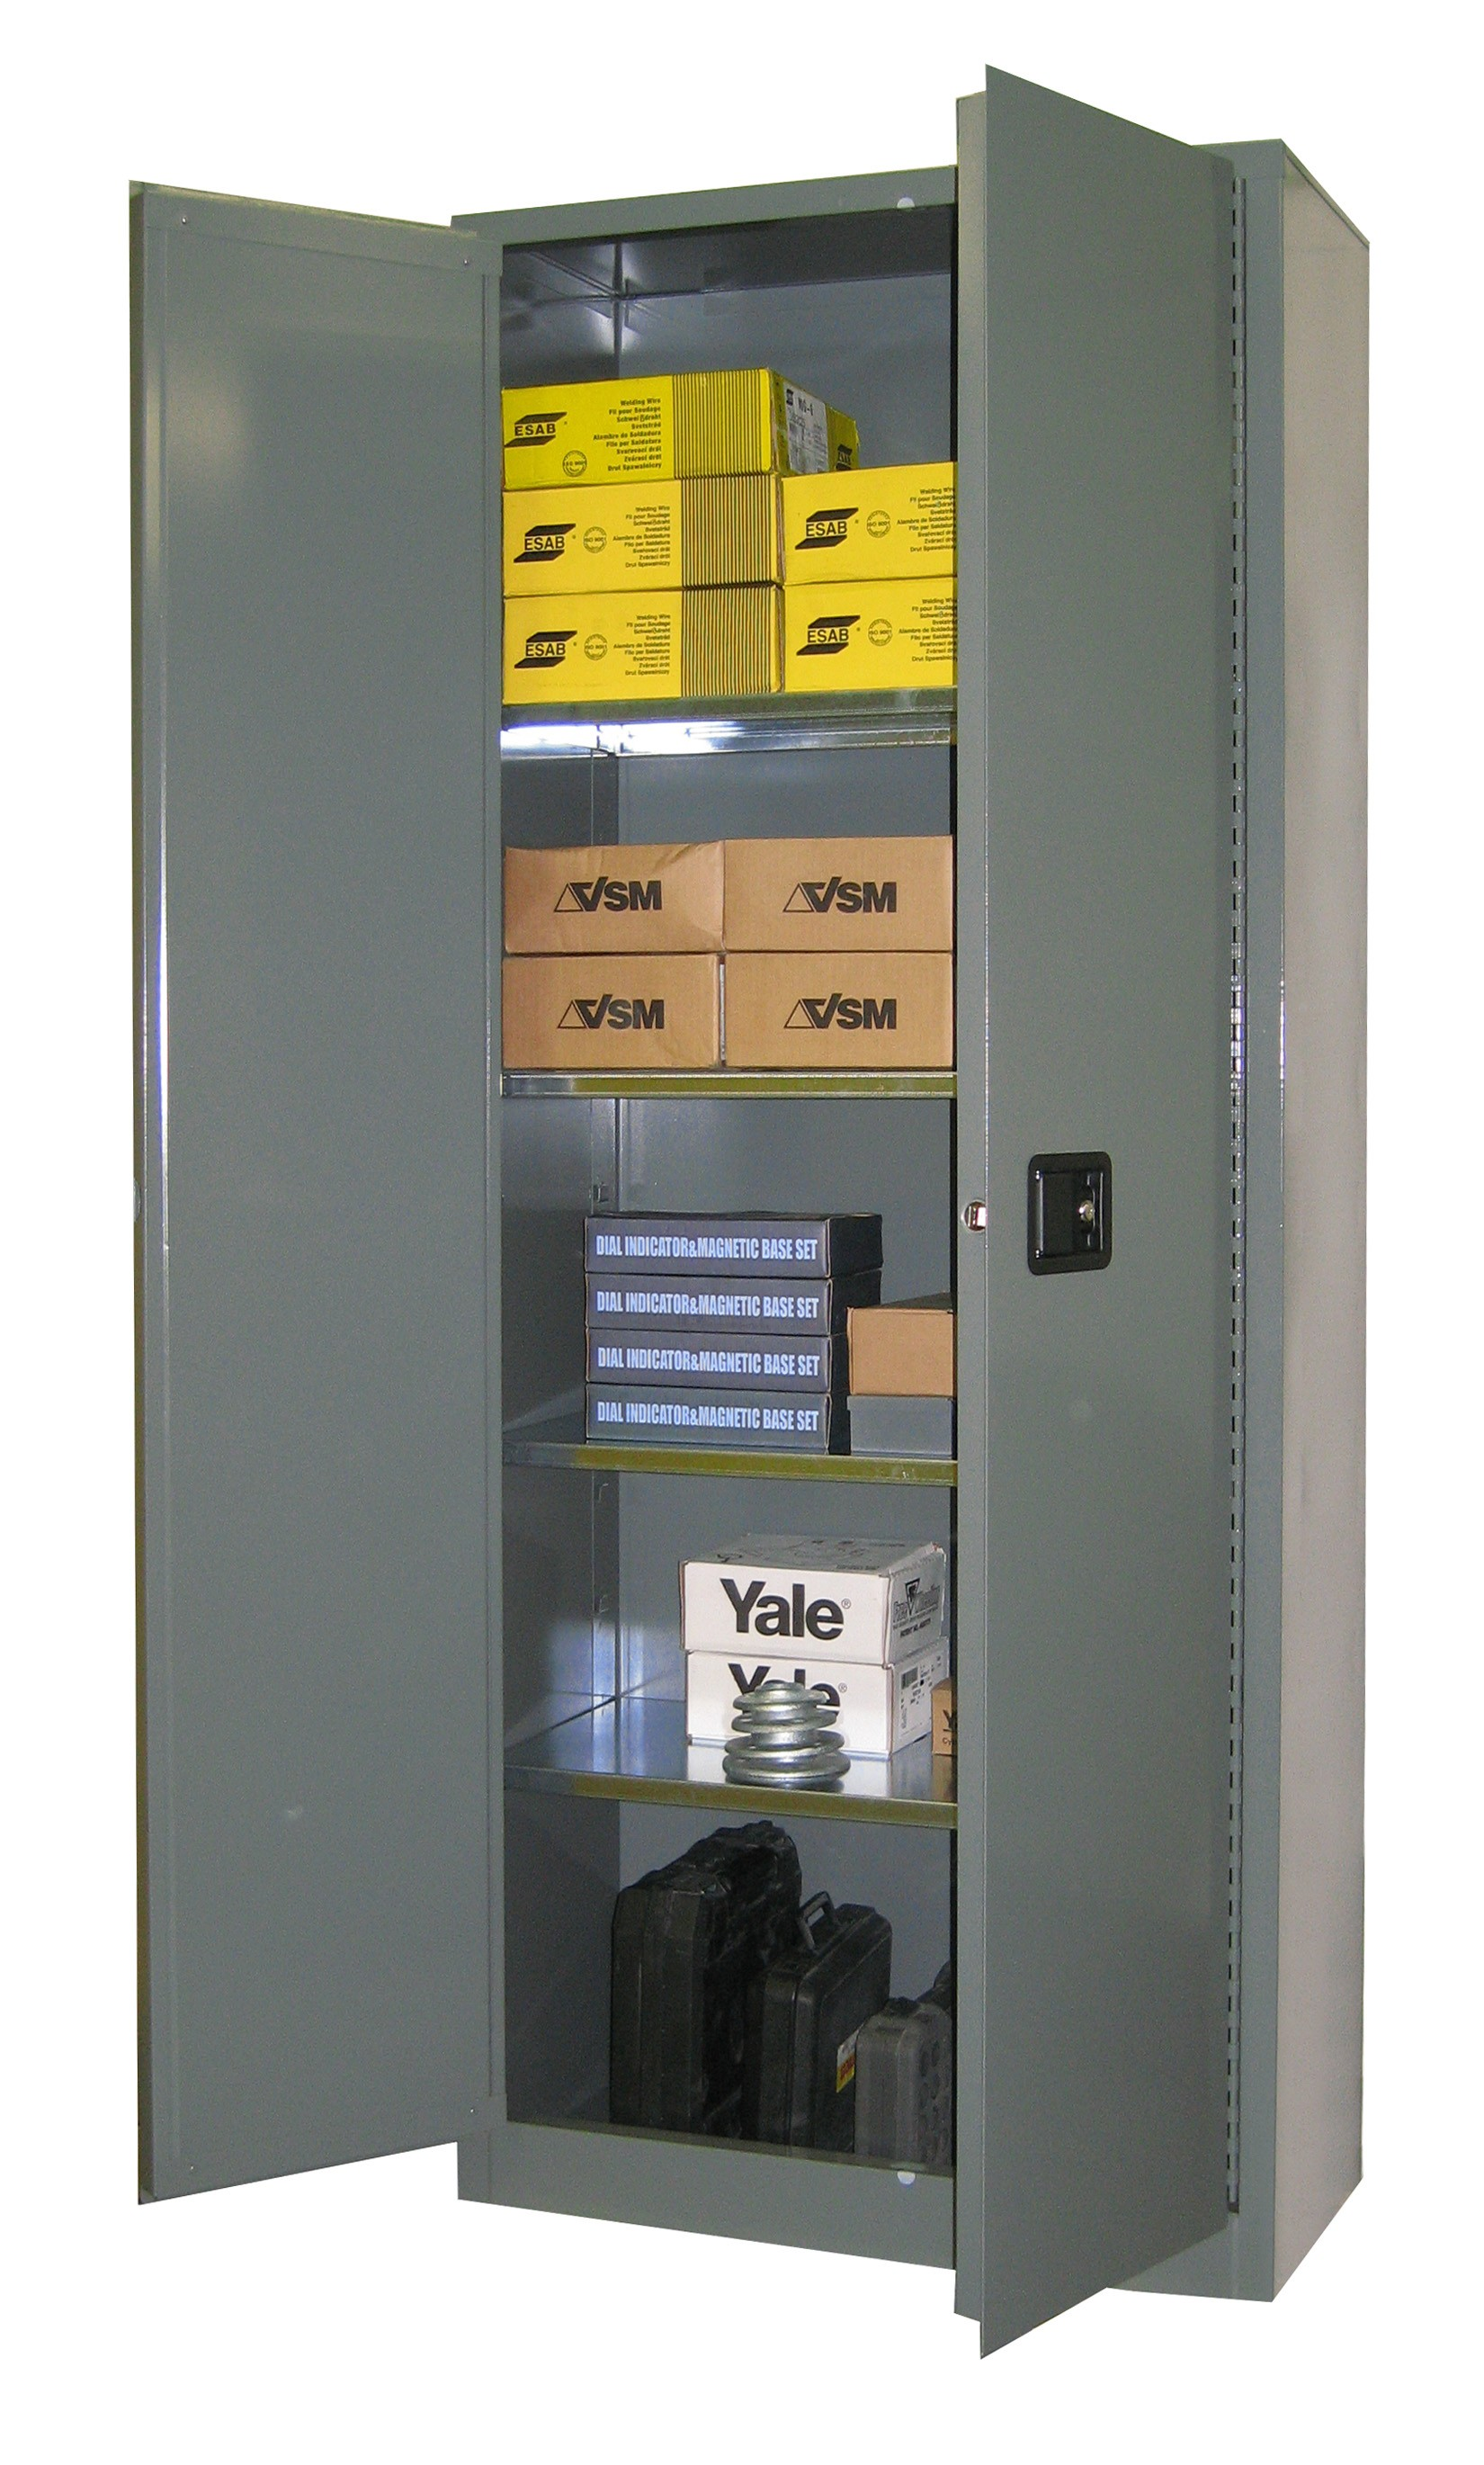 SS184 - Industrial Storage Cabinet - 31 Cubic Feet Capacity